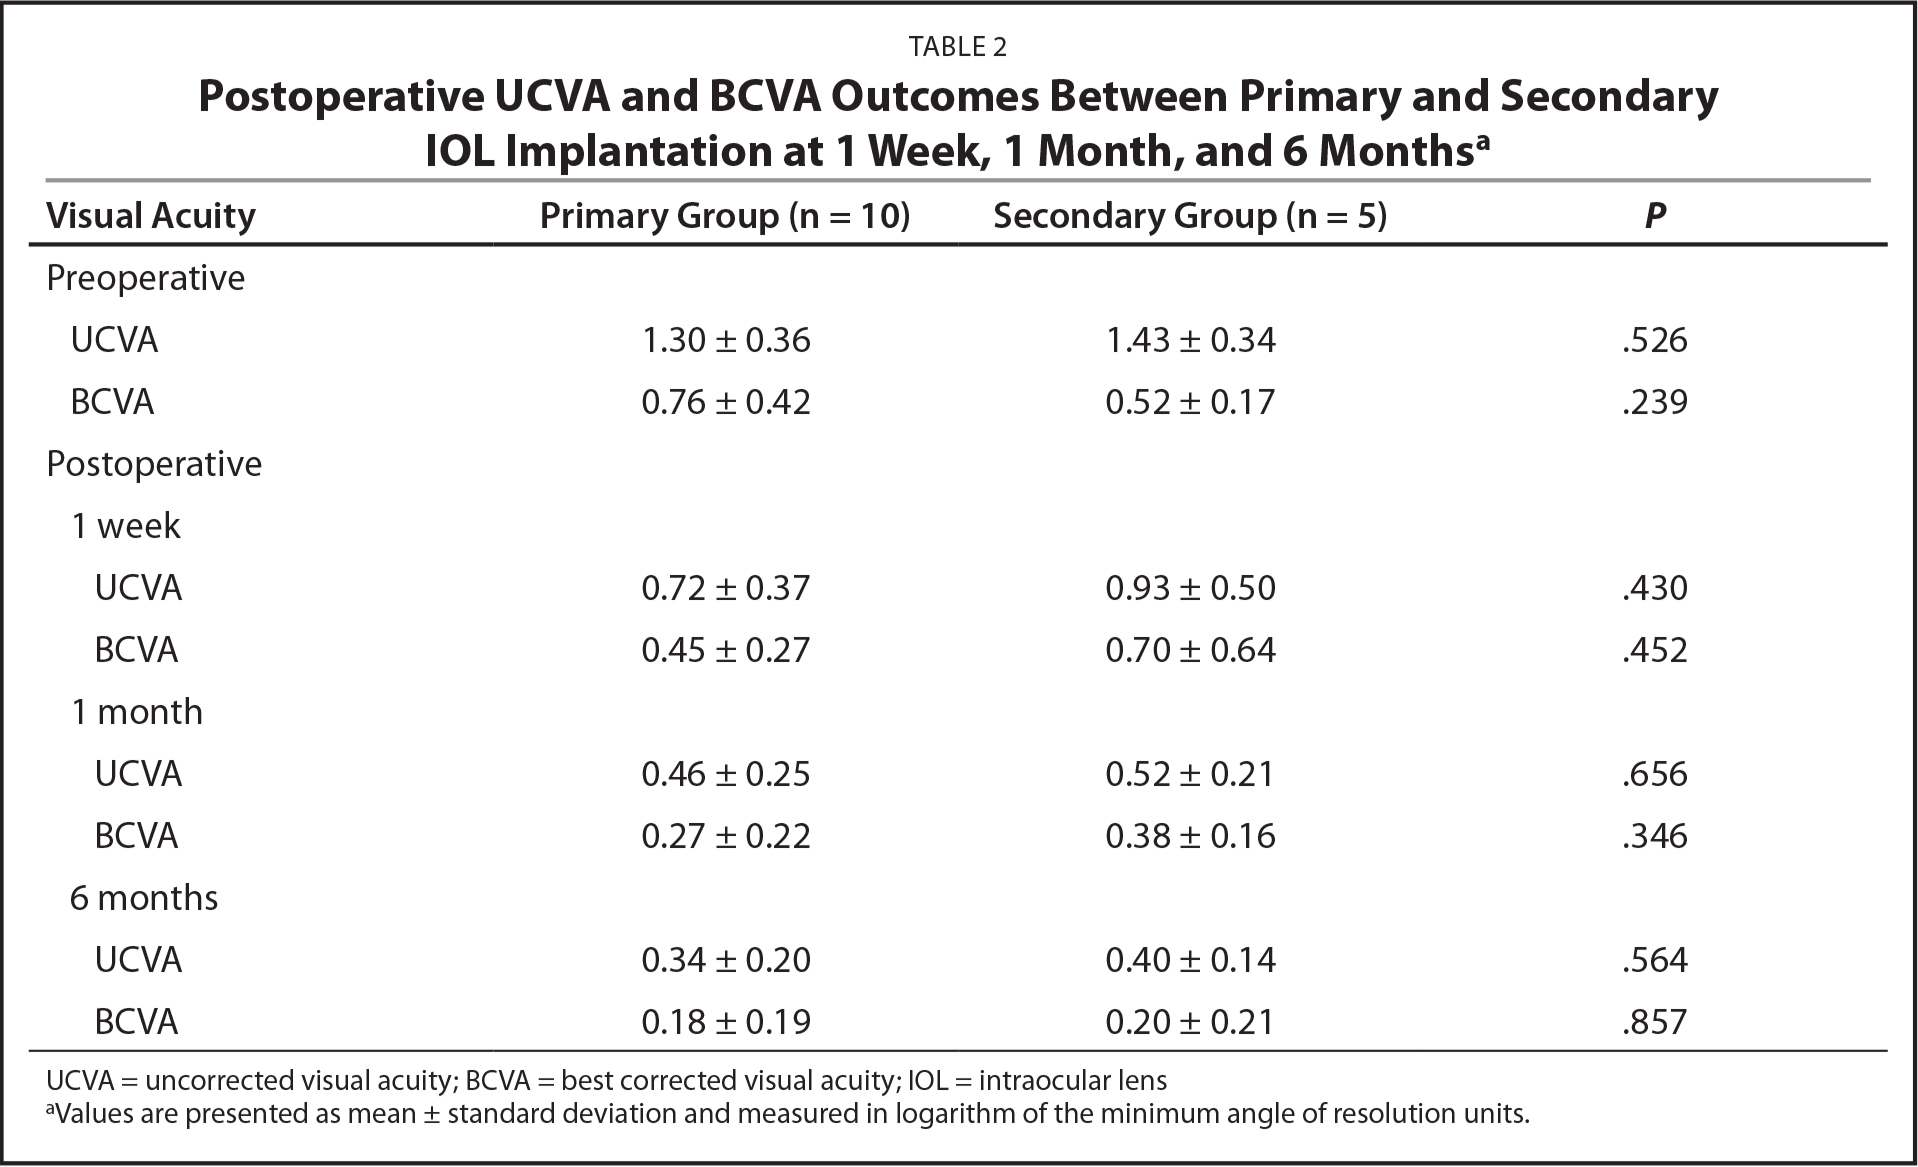 Postoperative UCVA and BCVA Outcomes Between Primary and Secondary IOL Implantation at 1 Week, 1 Month, and 6 Monthsa